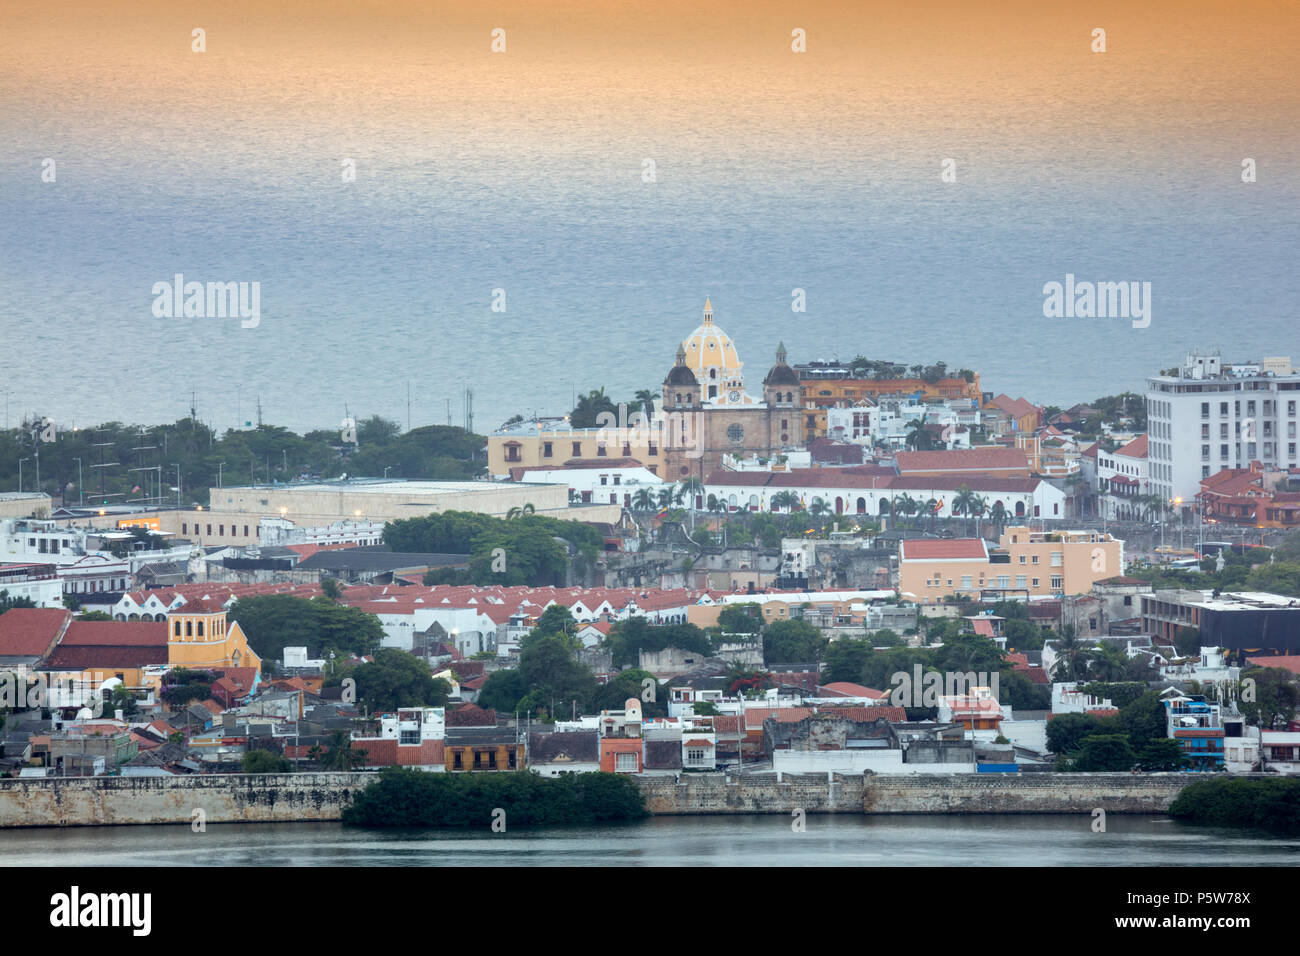 The skyline of the historical Unesco World Heritage listed centre of Cartagena city, on the Caribbean coast of Colombia, South America Stock Photo